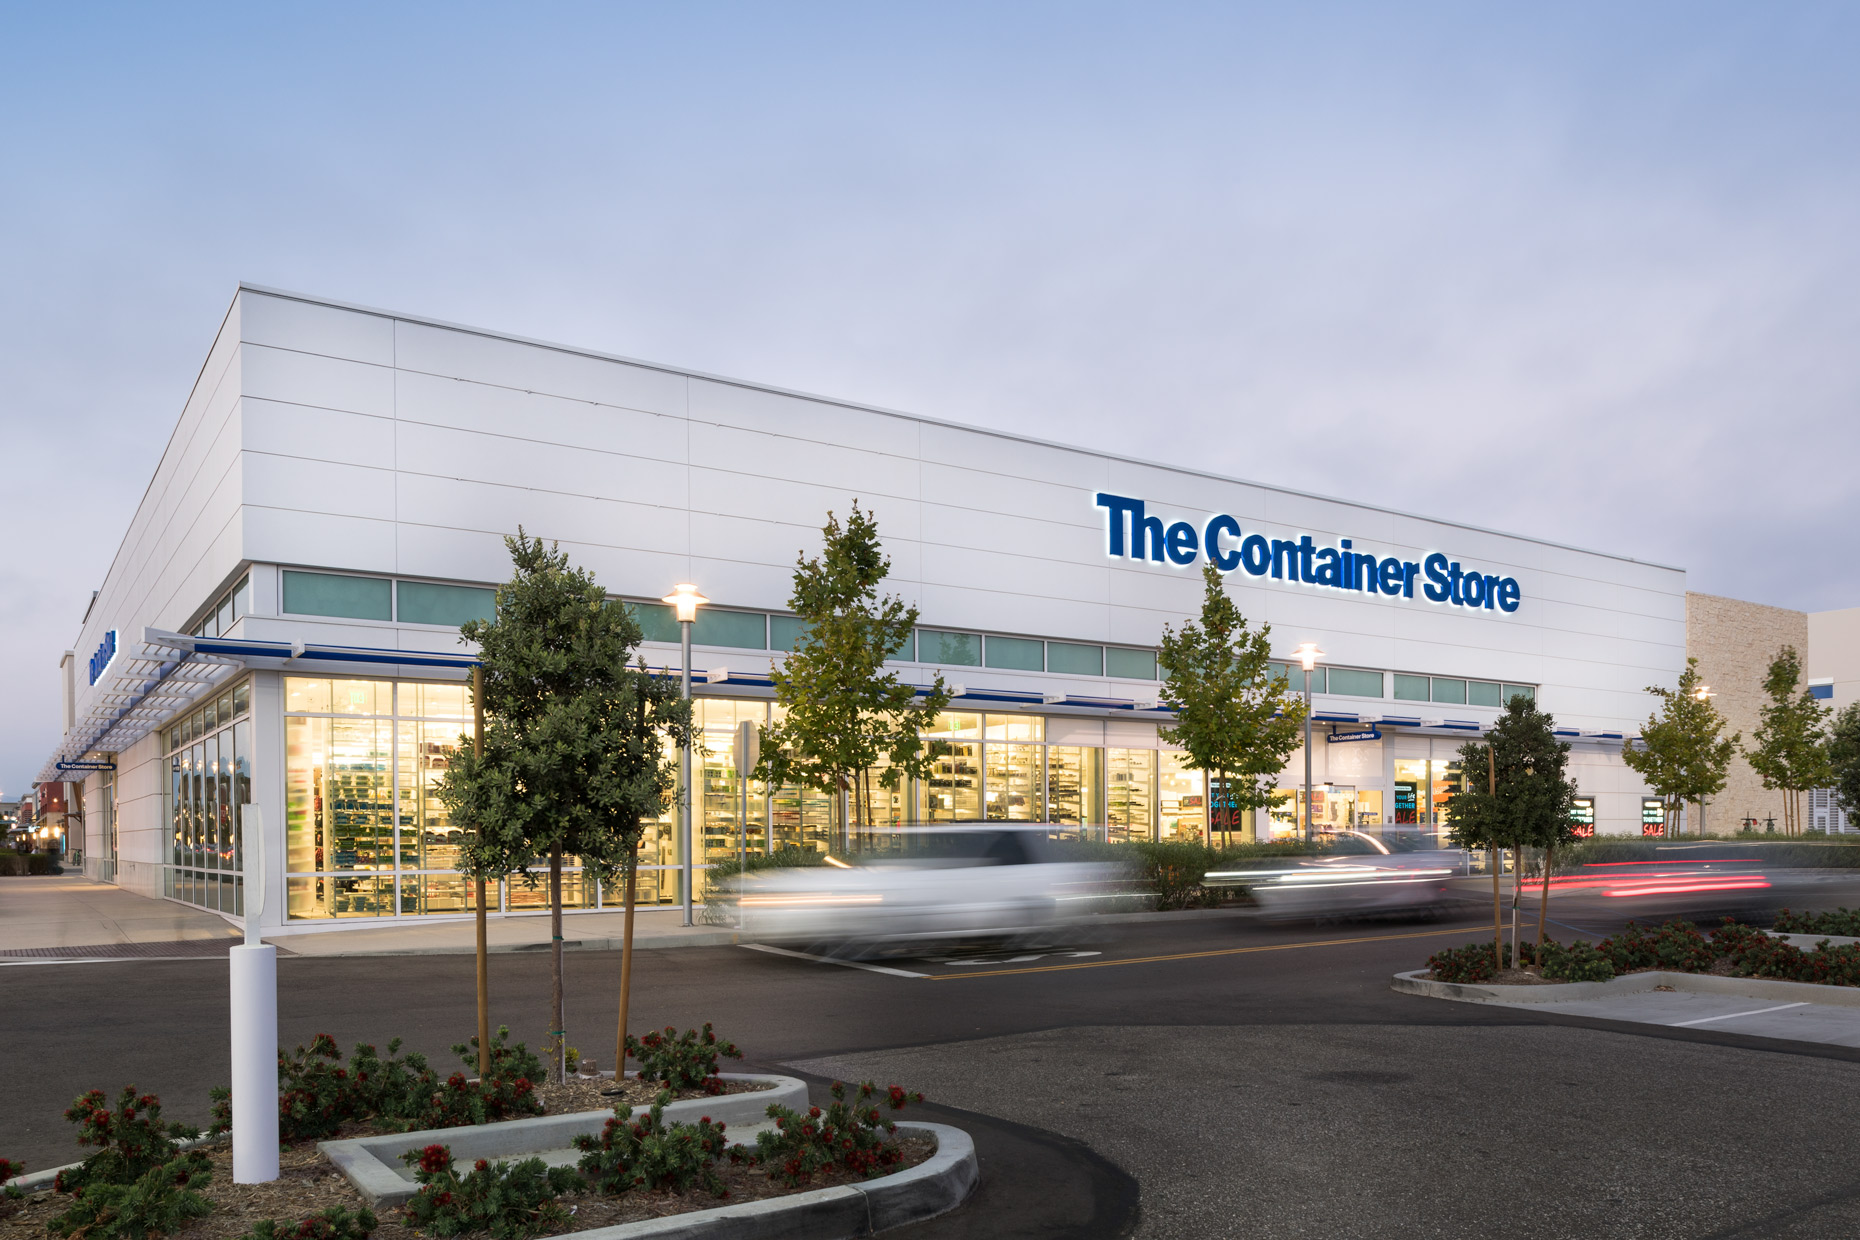 The Container Store architectural exterior photography by Kevin Brown